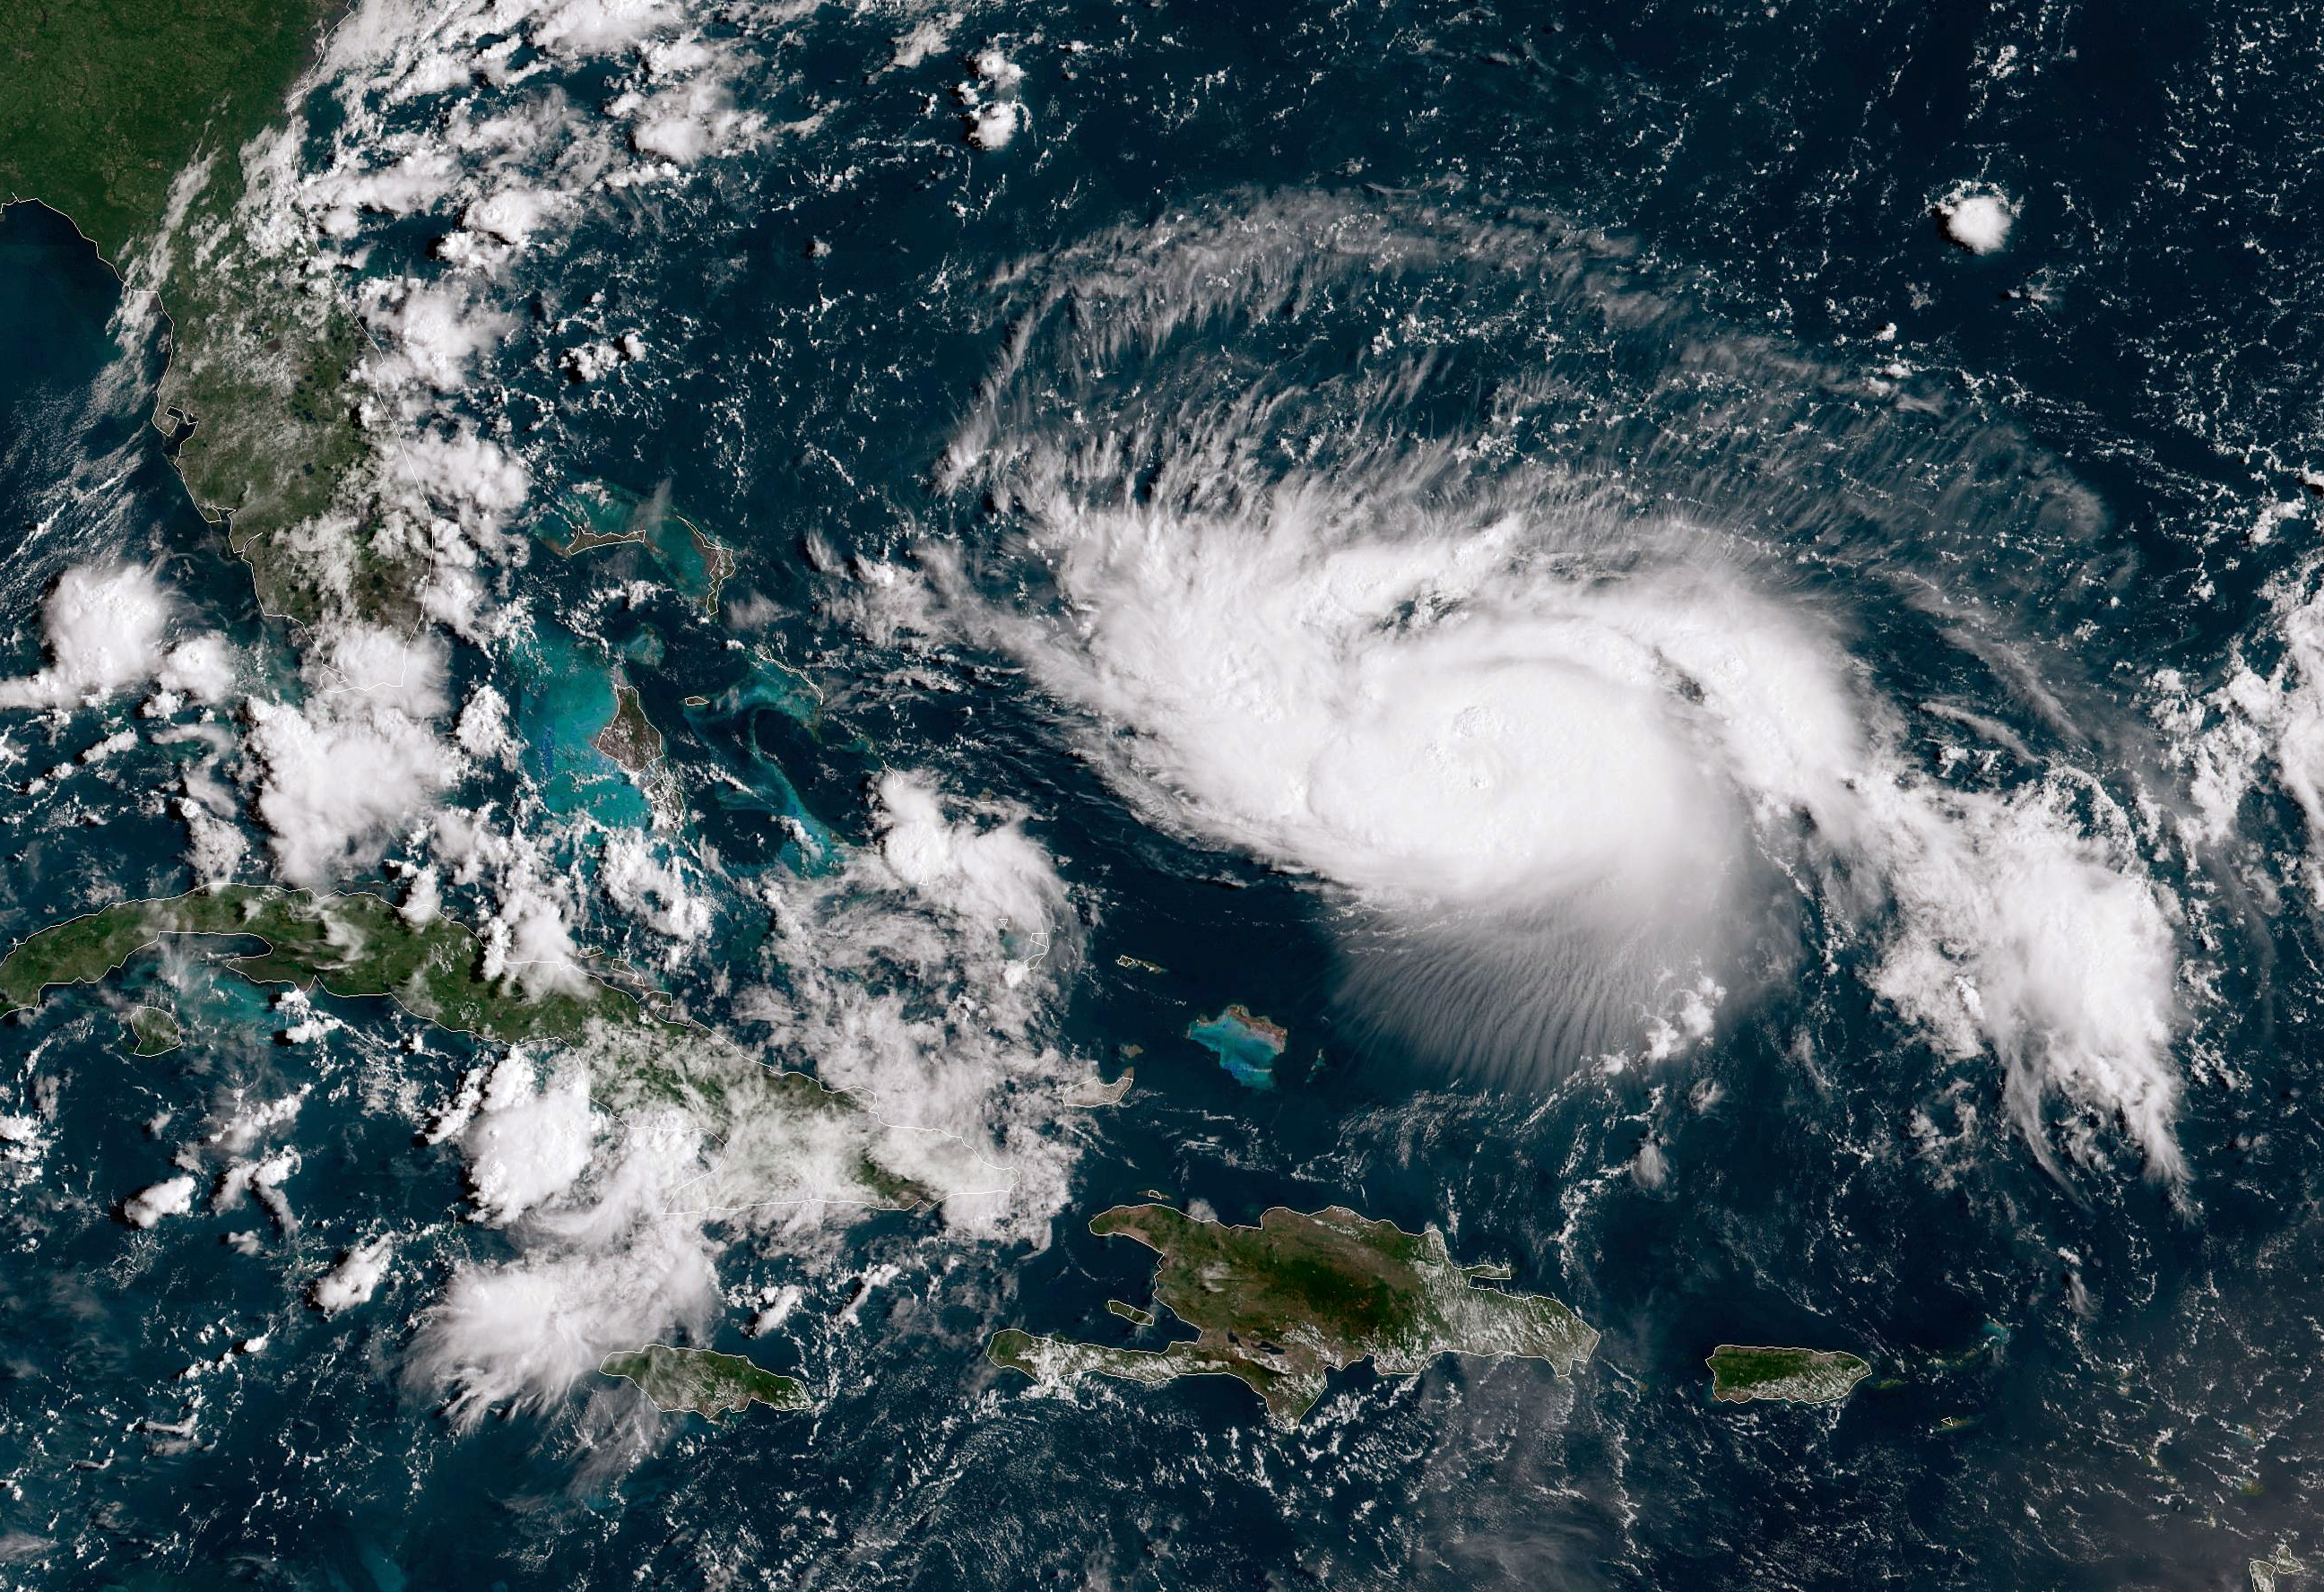 In this NOAA GOES-East satellite image, Hurricane Dorian, now a Cat. 2 storm with maximum sustained winds of 110 mph, gains strength as it tracks towards the Florida coast taken at 13:40Z August 30, 2019 in the Atlantic Ocean.